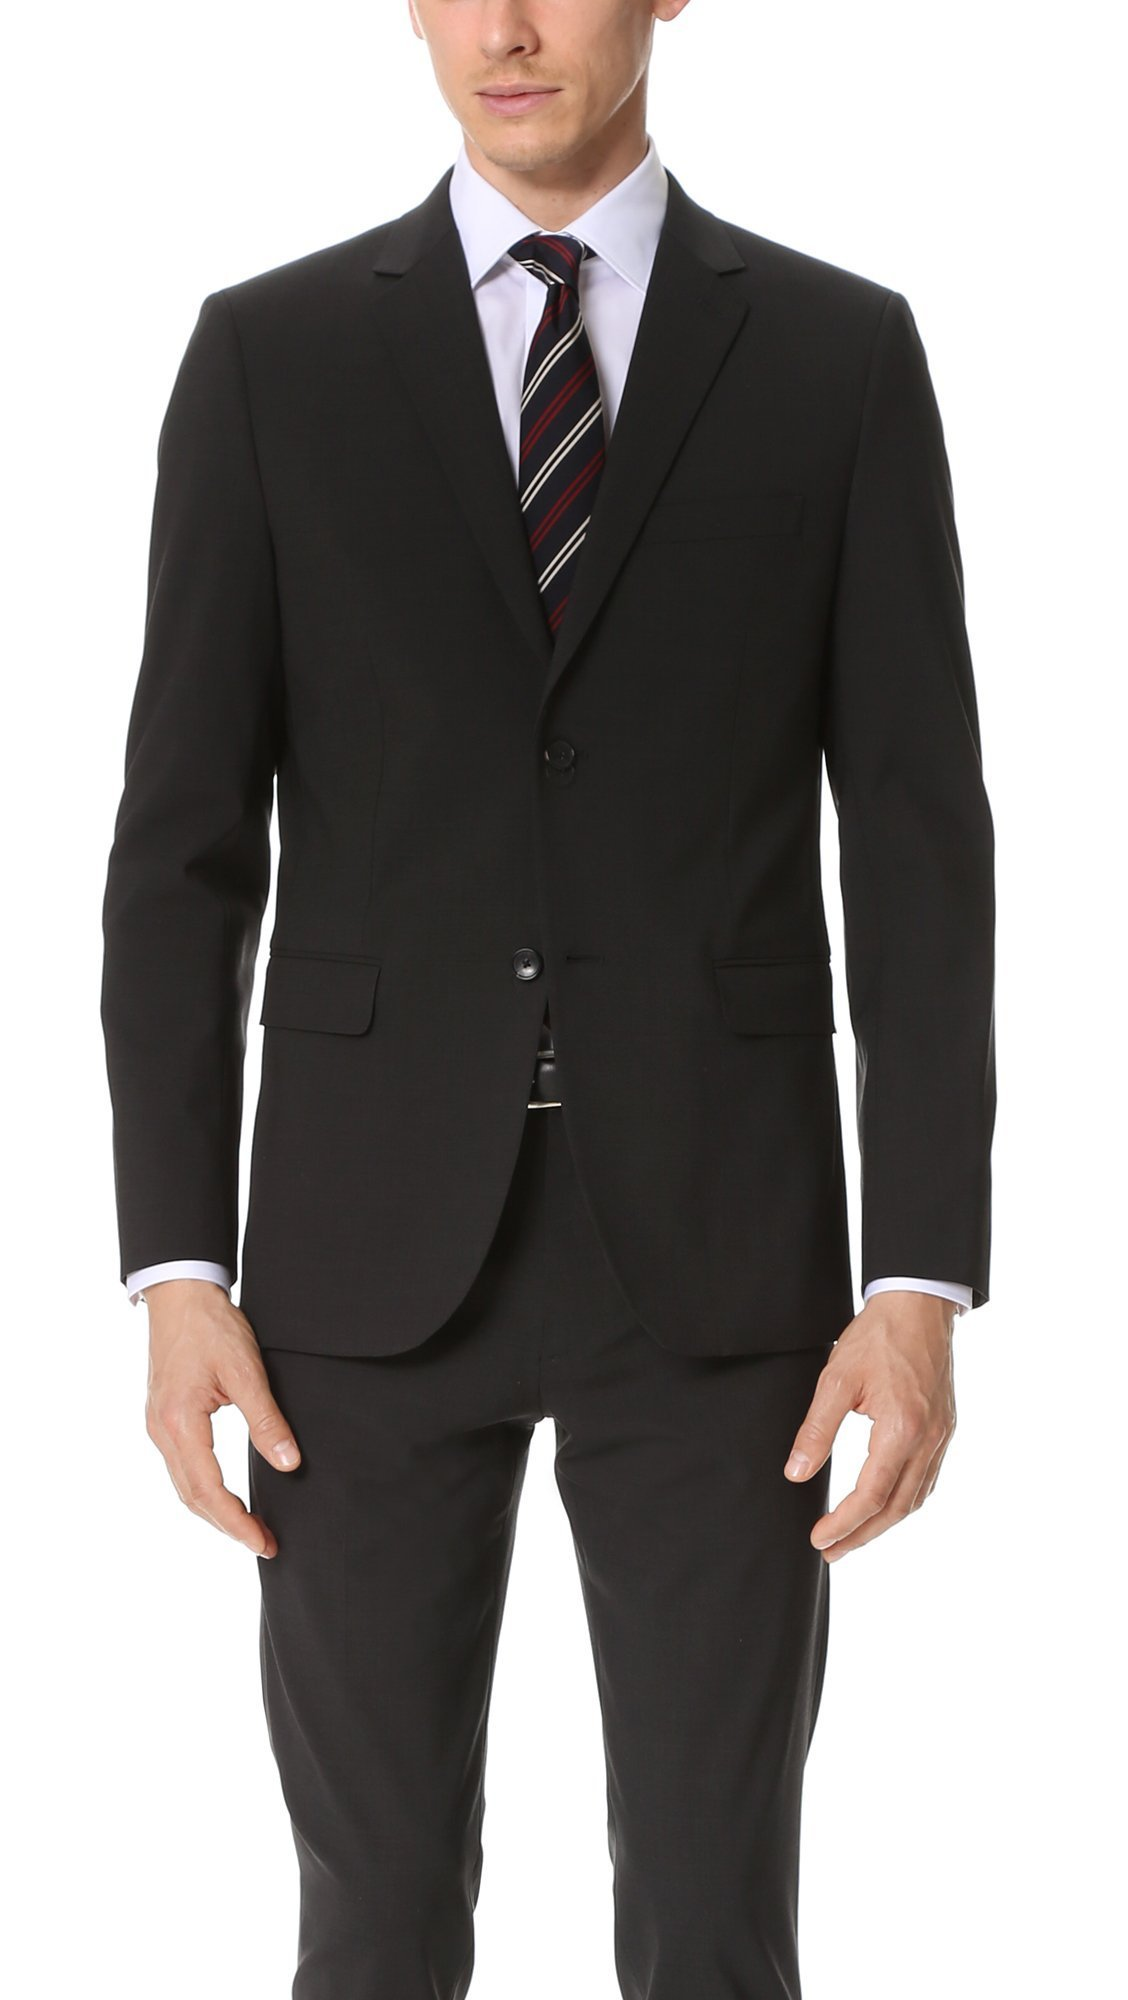 Theory Men's Wellar New Tailor Suit Jacket, Dark Charcoal, 40